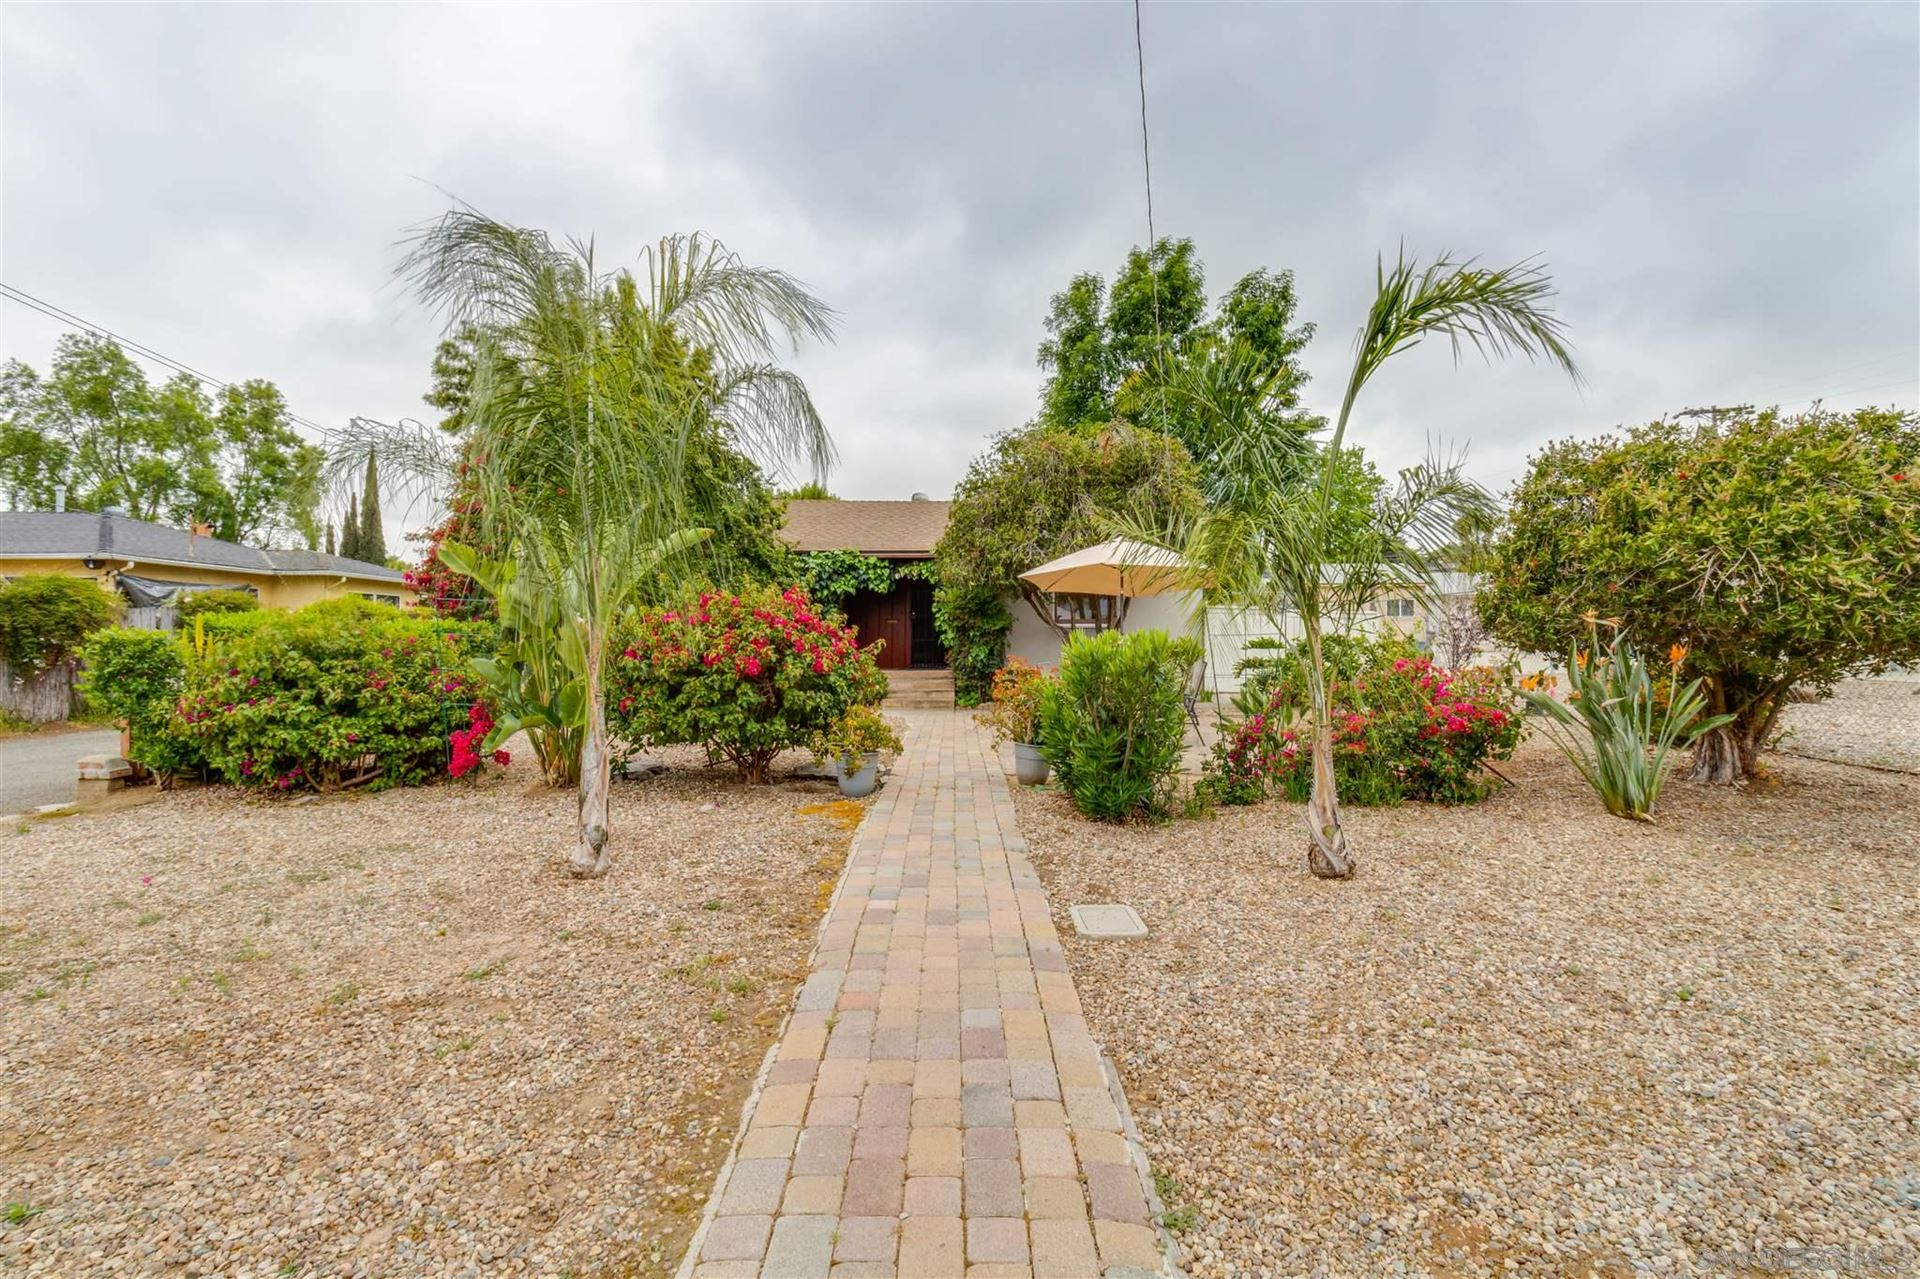 Photo of 919 S SPRUCE ST, ESCONDIDO, CA 92025 (MLS # 210008913)